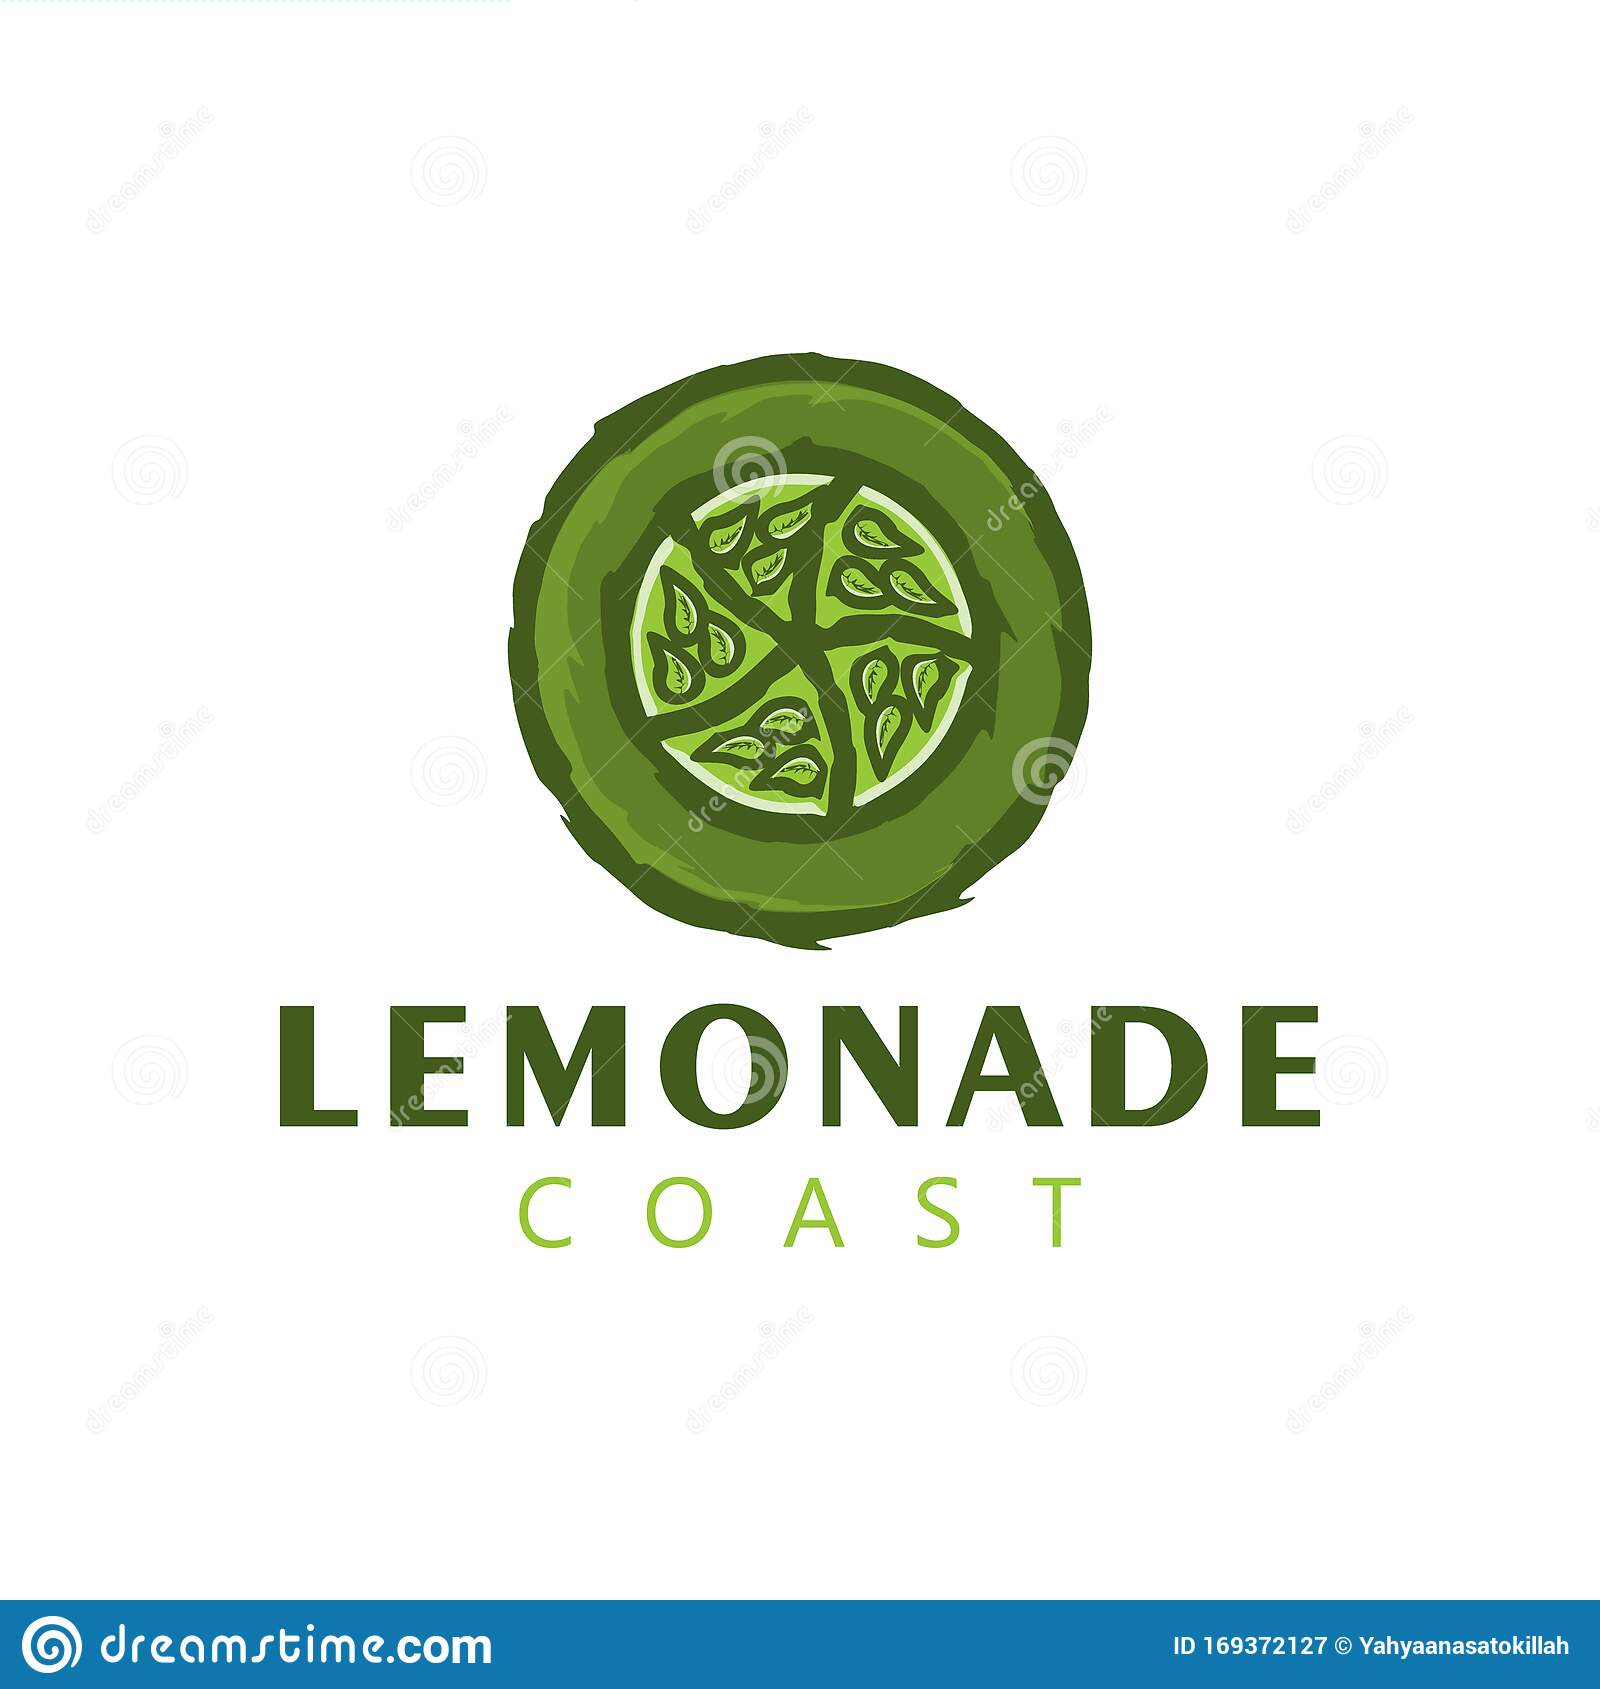 slice lemonade juice logo ideas inspiration logo design template vector illustration isolated on white background stock vector illustration of cartoon store 169372127 https www dreamstime com slice lemonade juice logo ideas inspiration logo design template vector illustration isolated white background slice lemonade image169372127